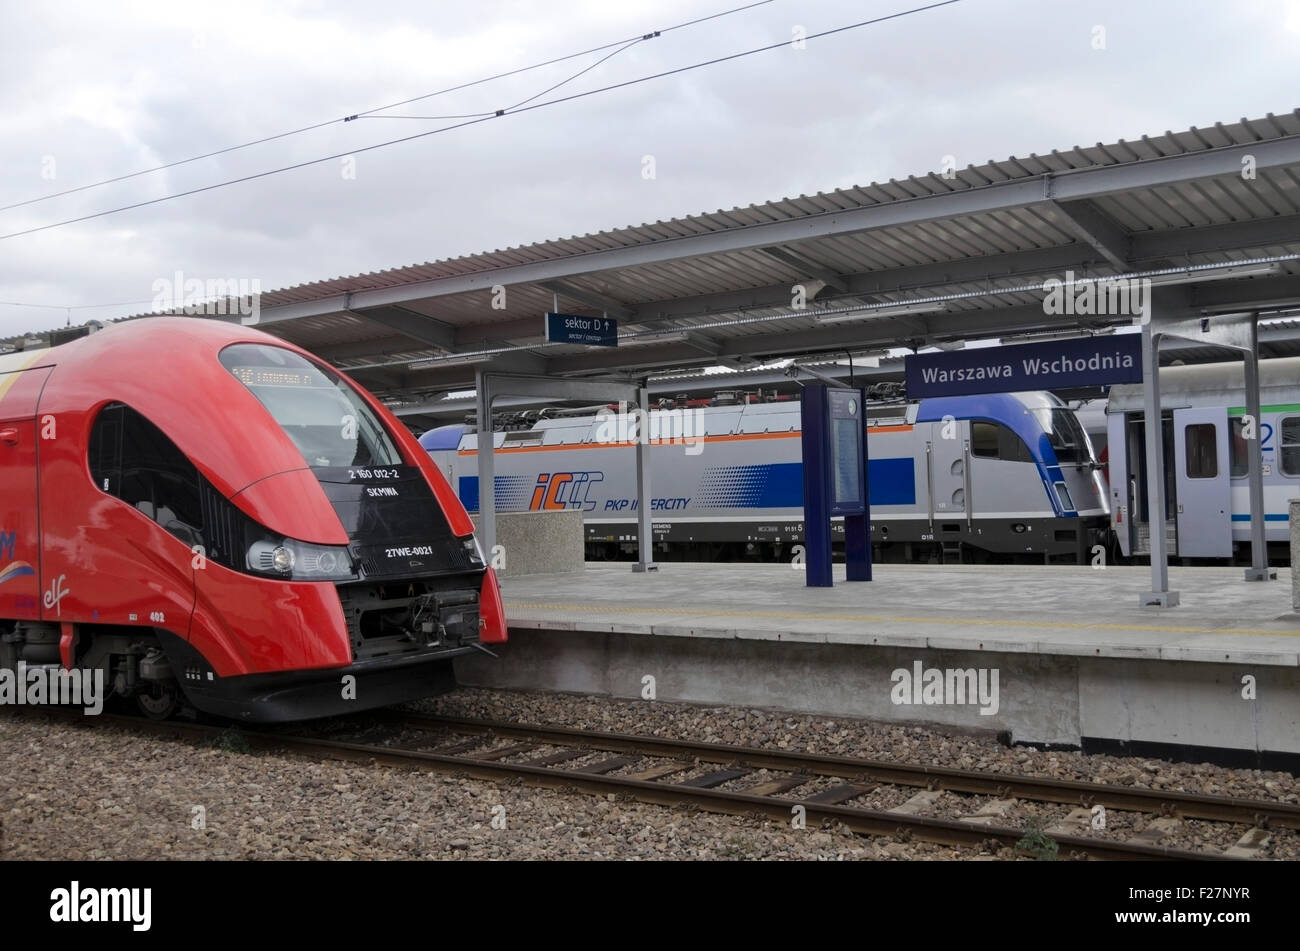 Intercity trains at a platform in Warsaw East Railway Station, Praga North, Polnoc, Warszawa, Polska, Poland, Europe, - Stock Image